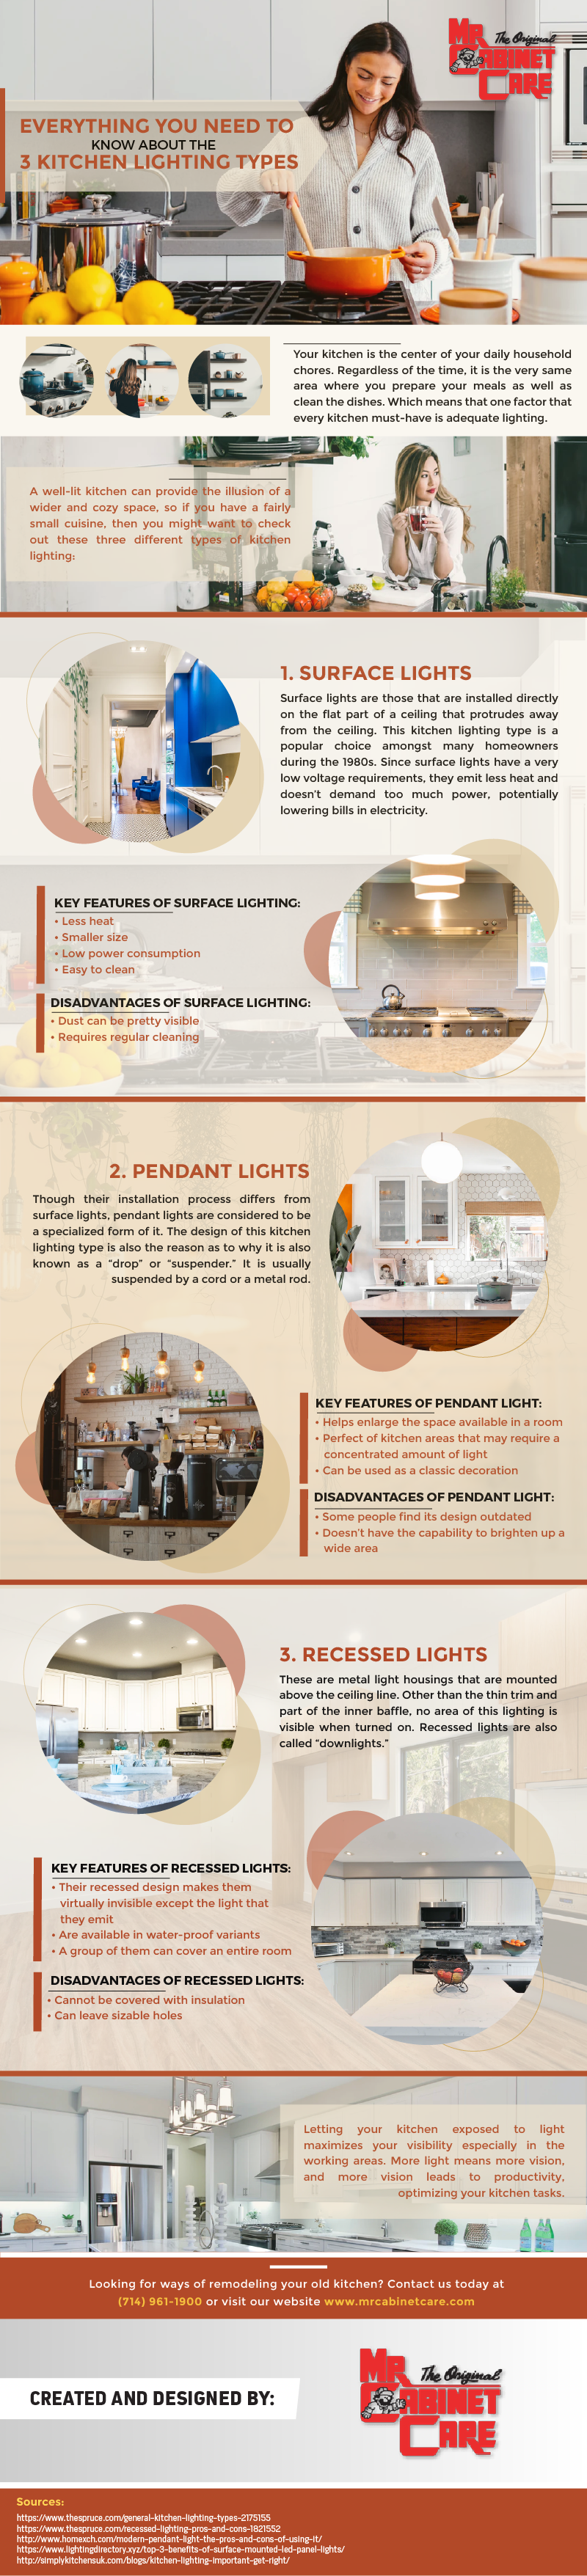 Everything You Need to Know About the 3 Kitchen Lighting Types - Infographic